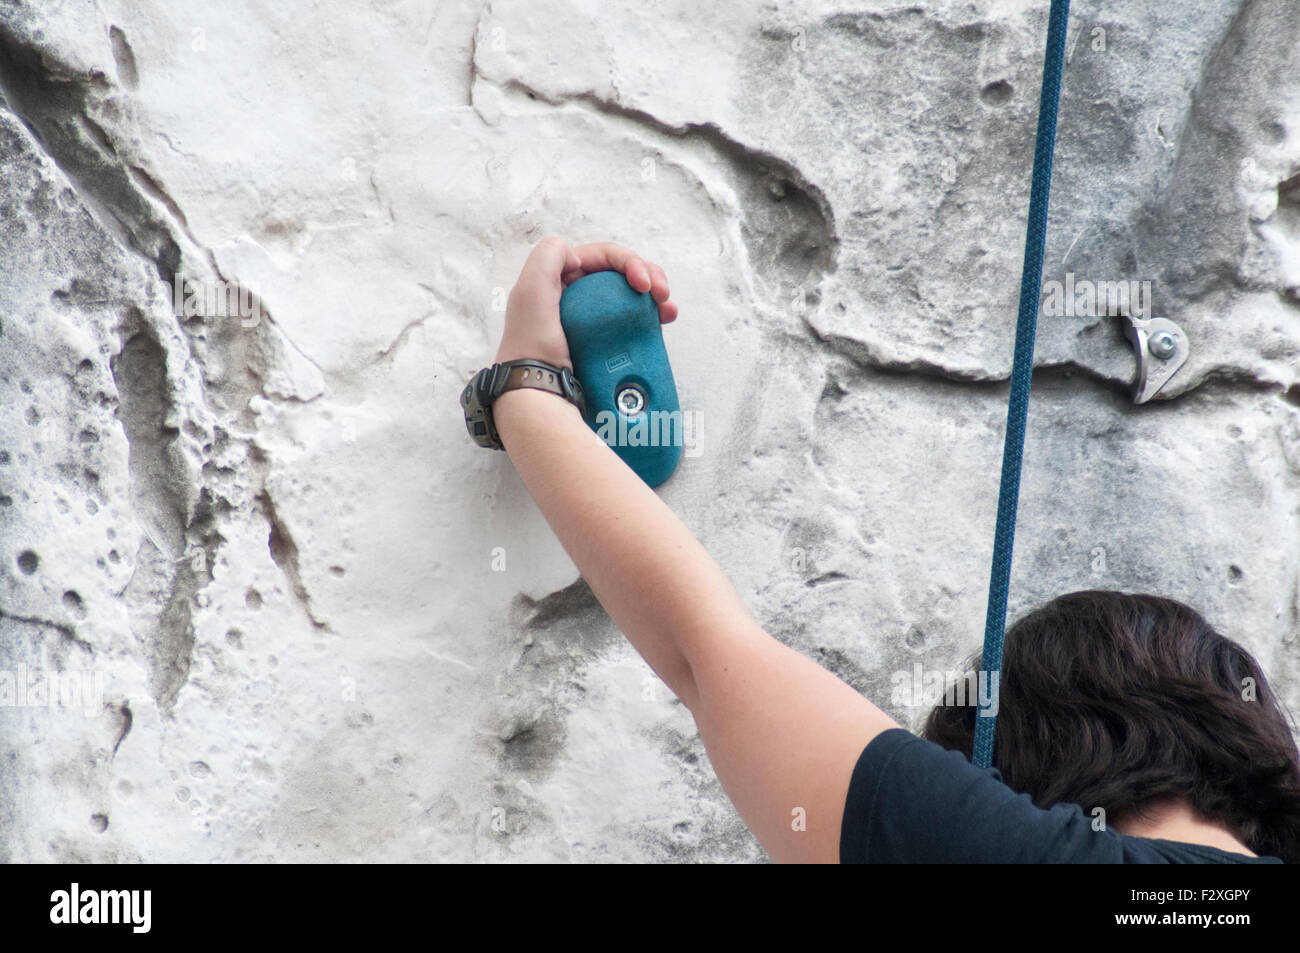 Young teen girl climbs up an artificial climbing wall Model release available - Stock Image